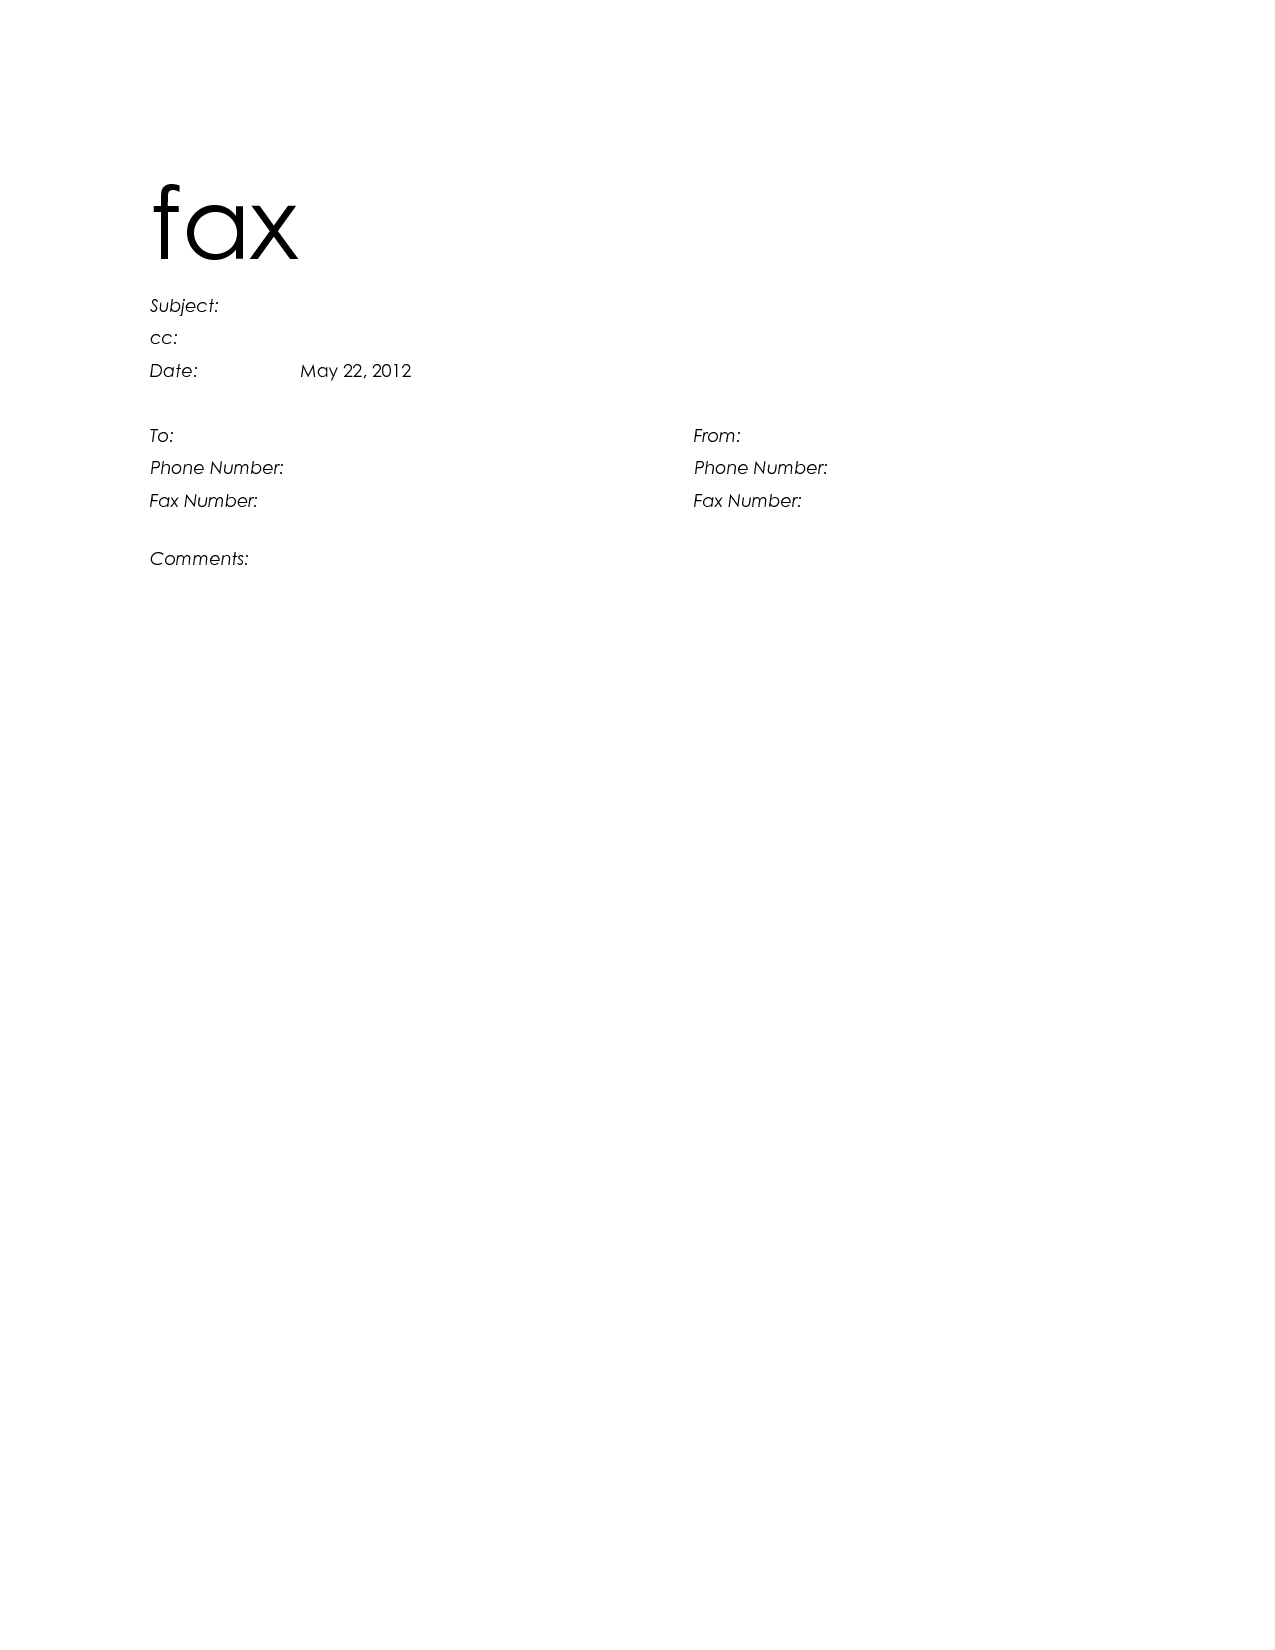 How To Make A Fax Cover Sheet In Word 2010 Kubreforic